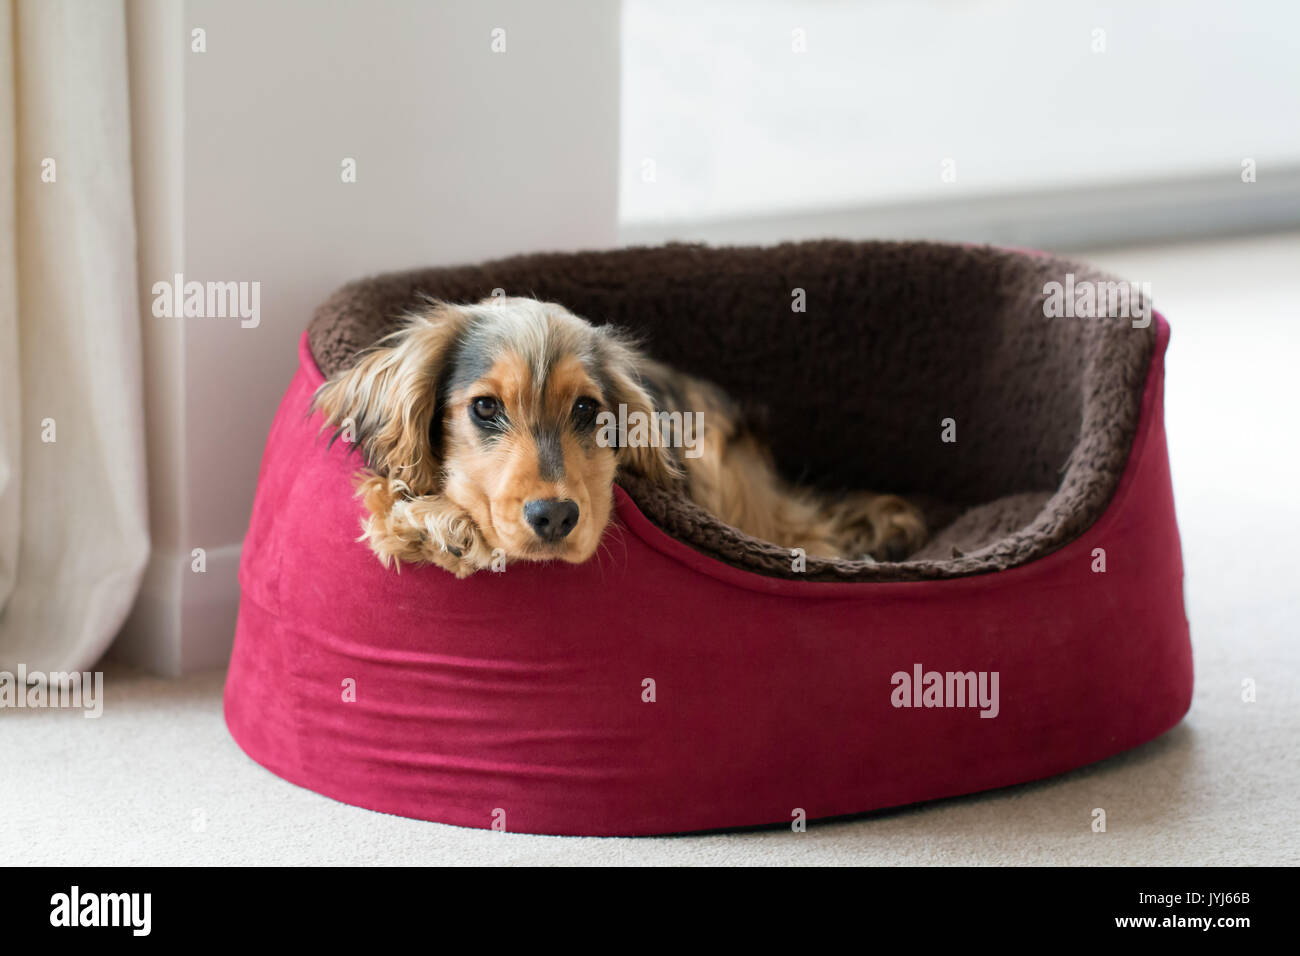 Eight-month-old English Show Cocker Spaniel puppy, lying in dog bed with head and paws over side. Looking straight at camera. - Stock Image